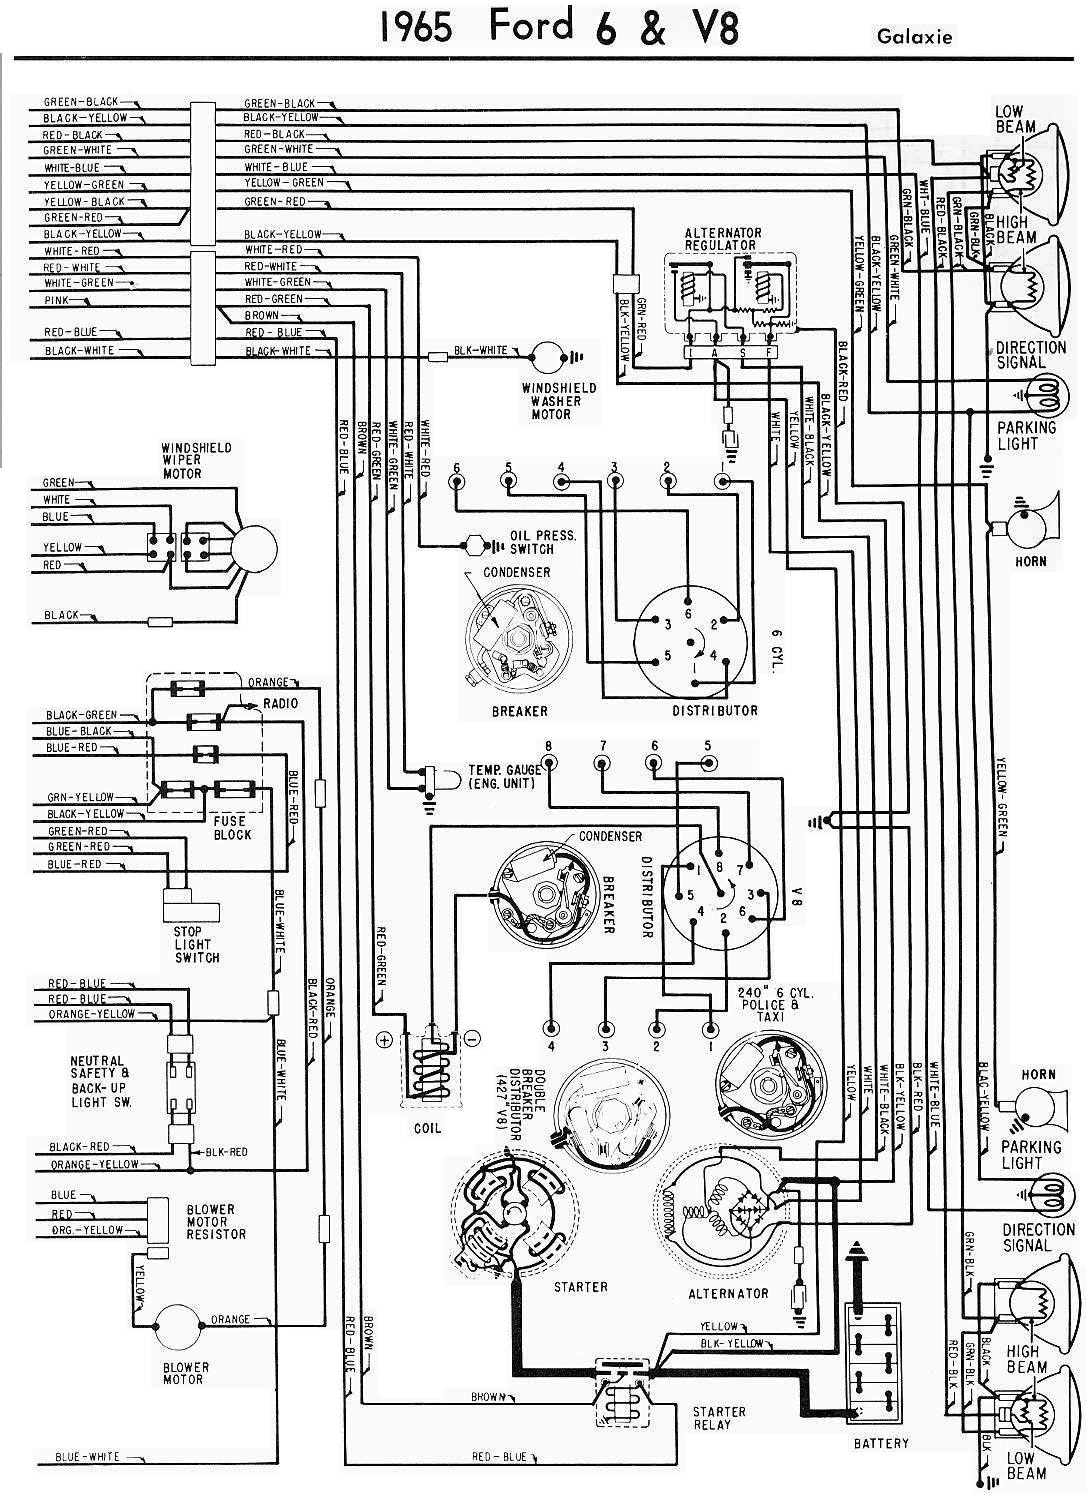 chevy wiring diagram 1965 ford fairlane wiring diagram images 1965 ford galaxie plete electrical wiring diagram part 2 all